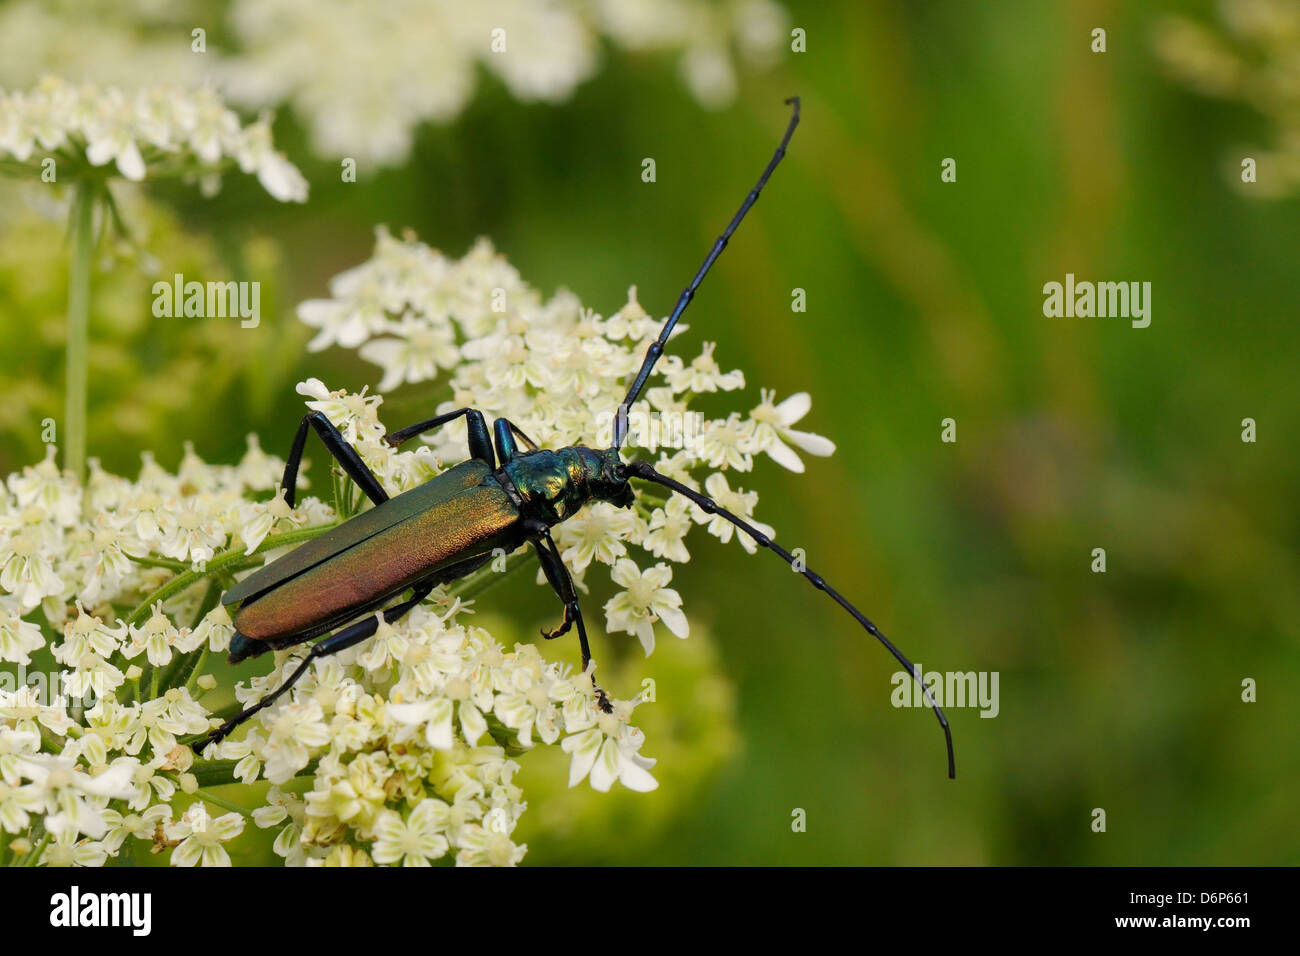 Musk beetle (Aromia moschata) foraging on wild carrot (Queen Anne's lace) (Daucus carota) flowerhead in a hay - Stock Image